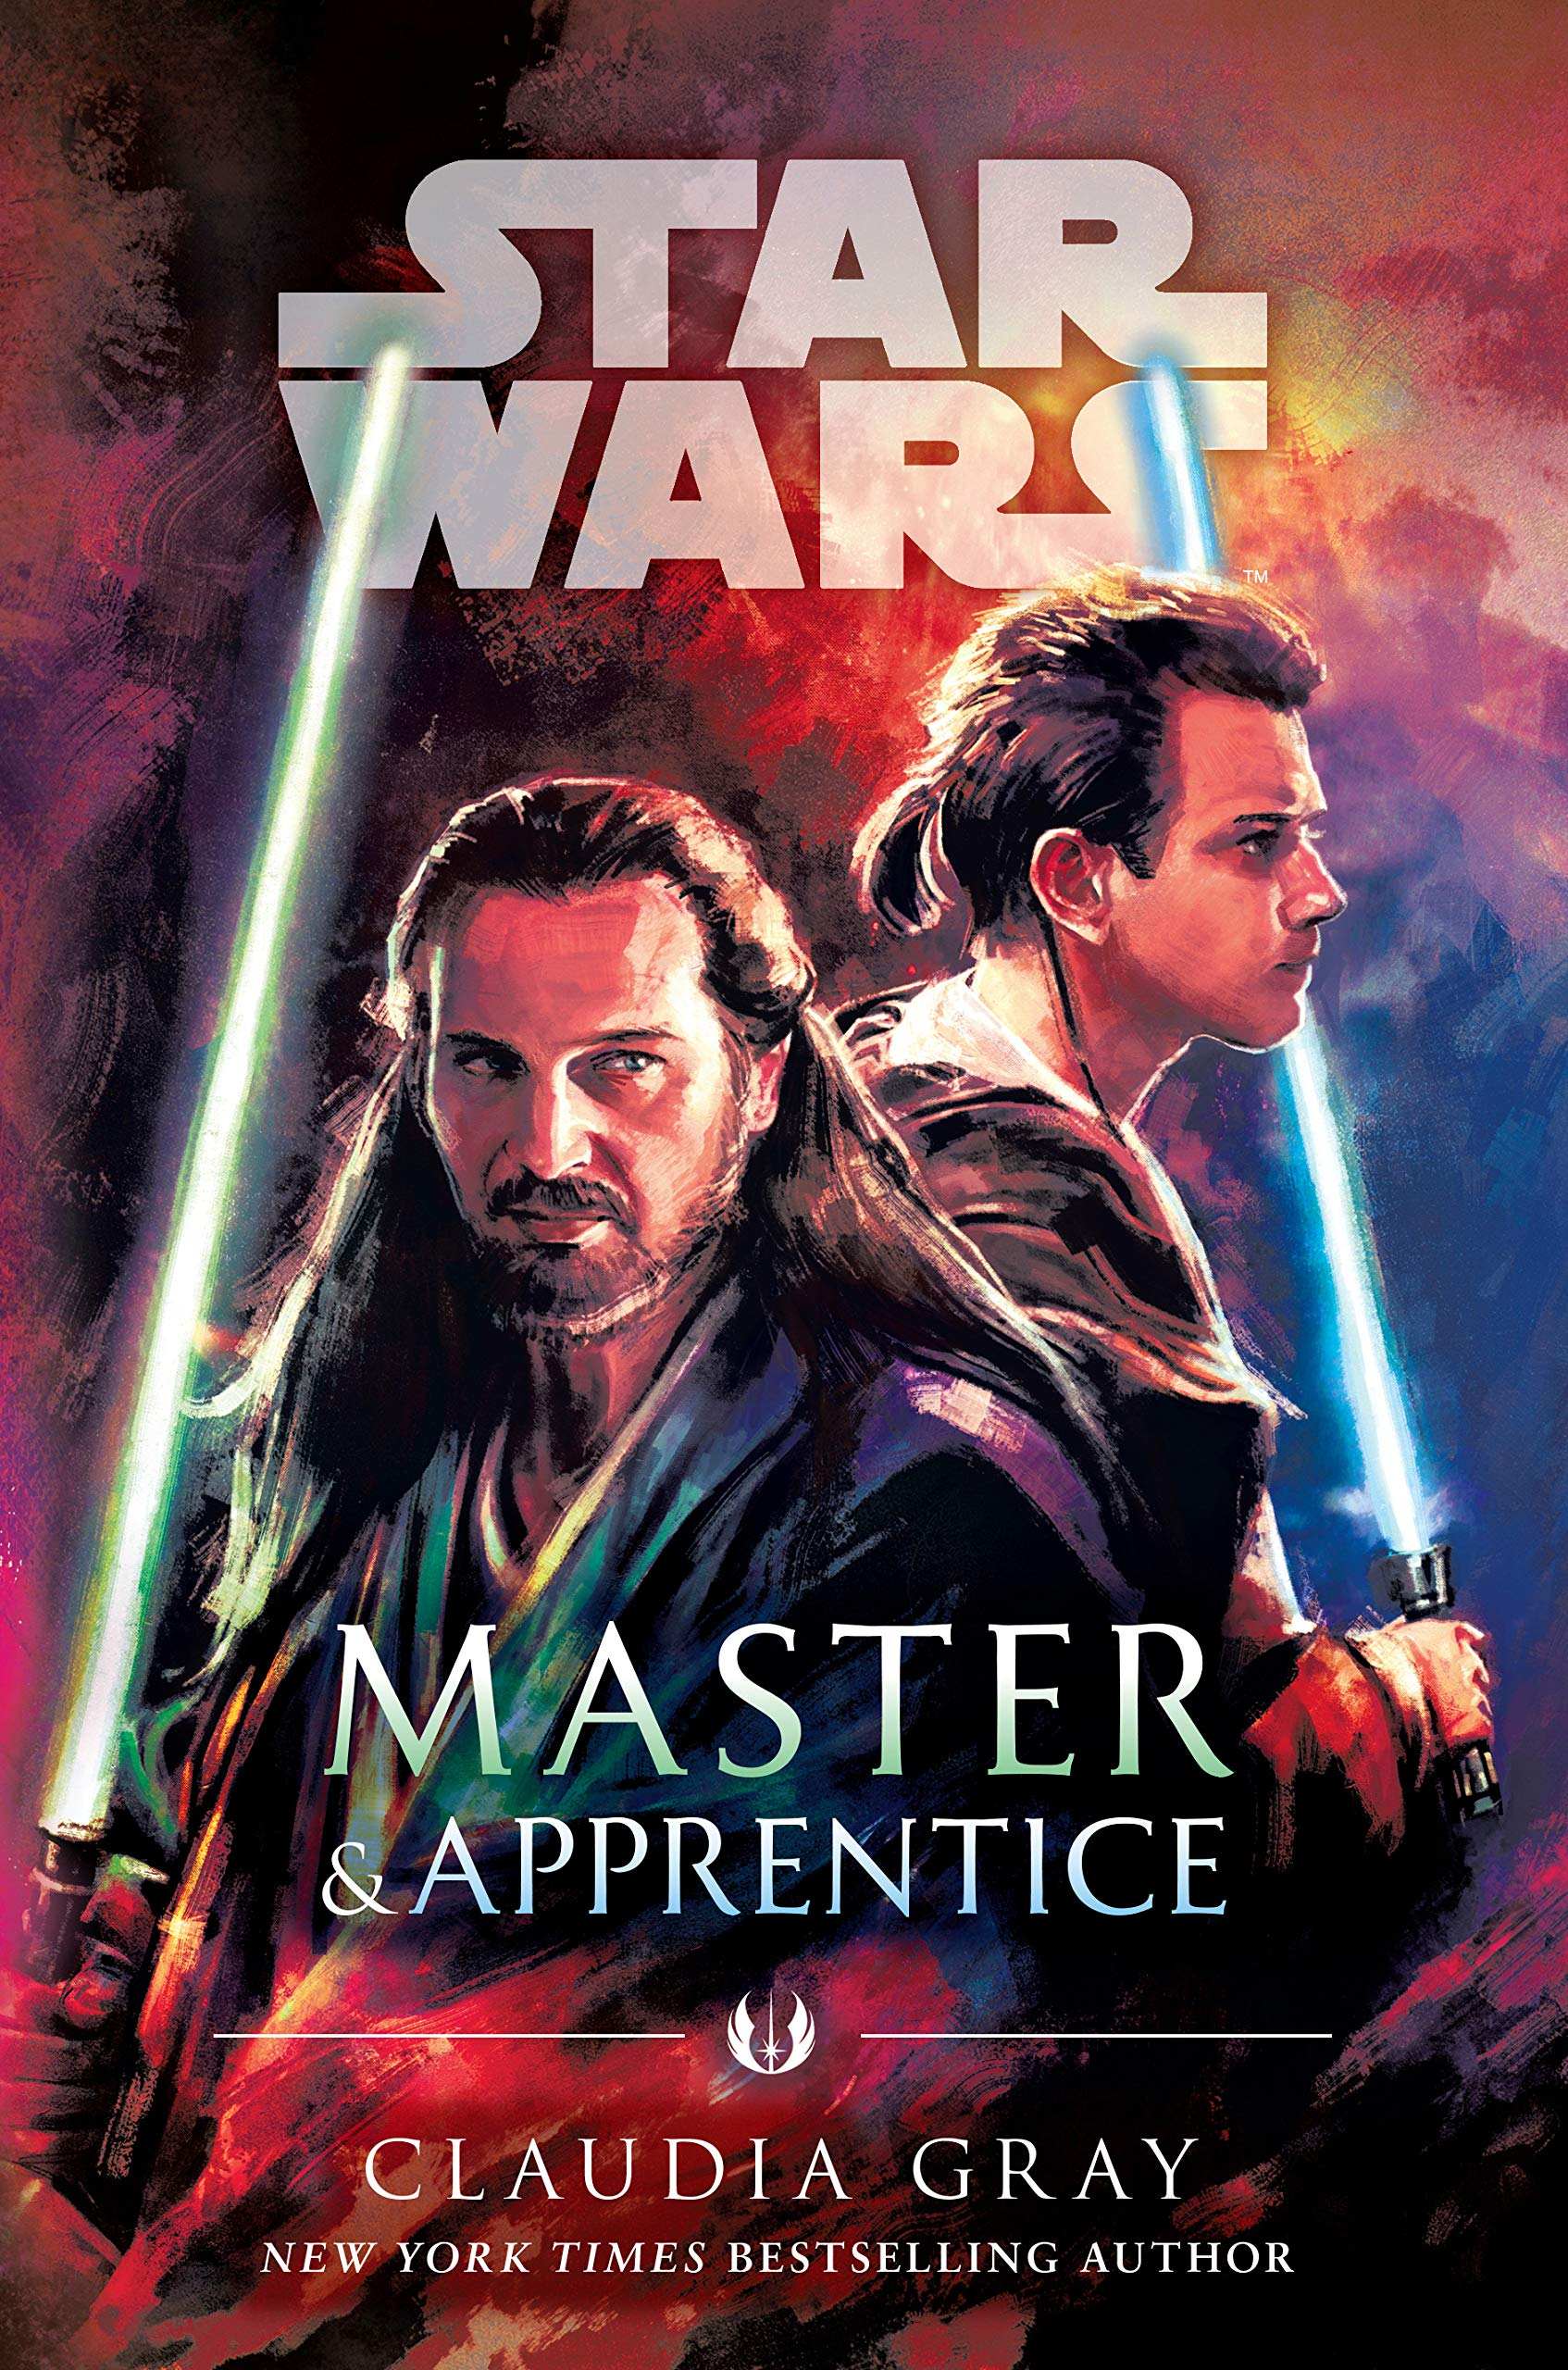 Master & Apprentice cover art